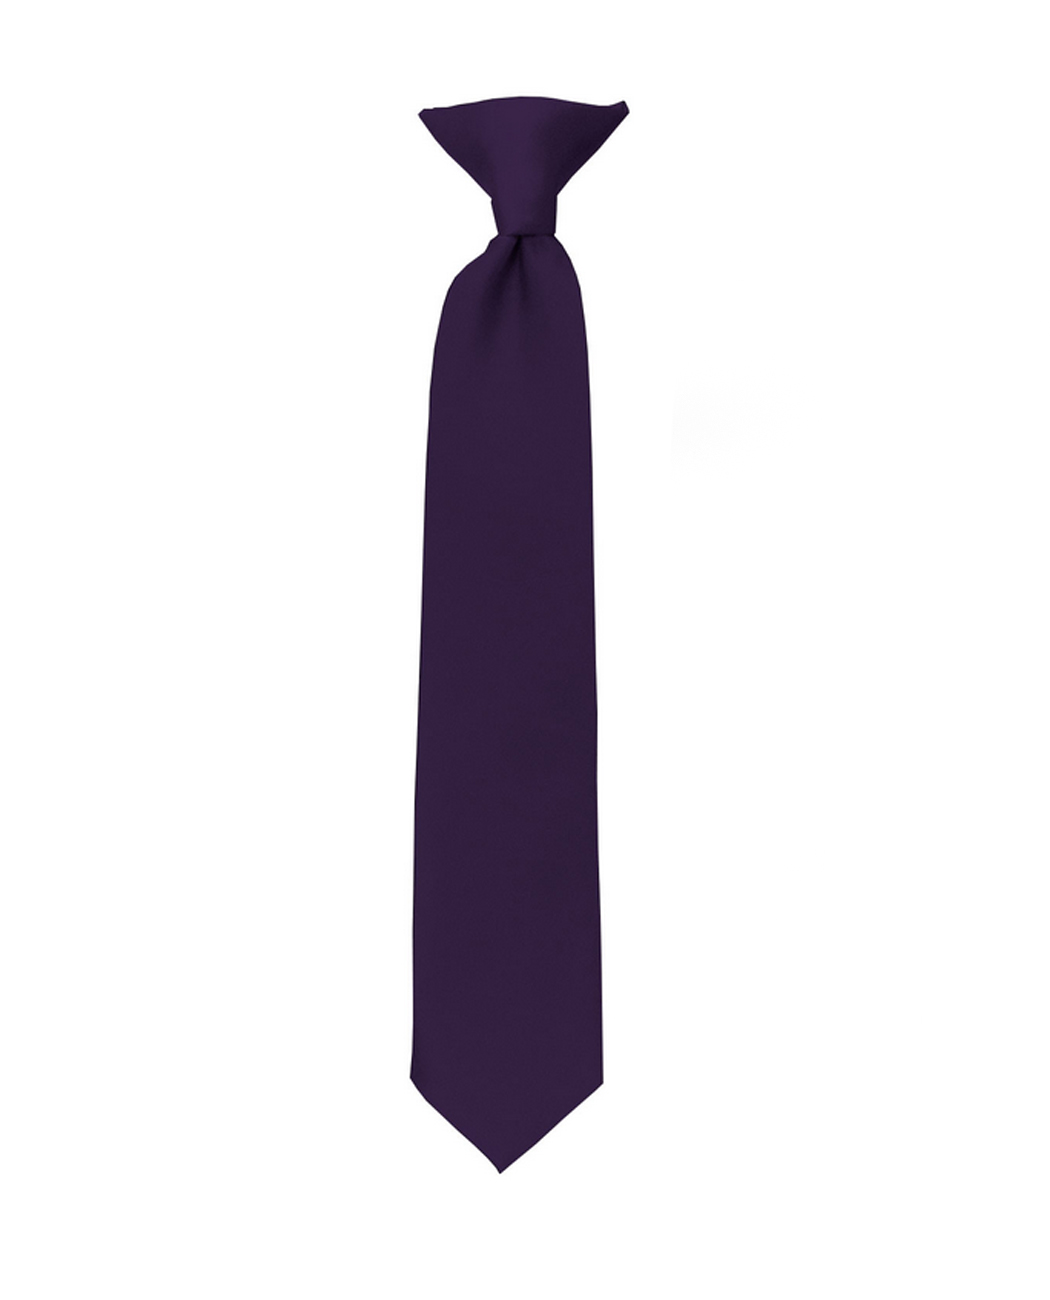 NYFASHION101 Mens Solid Color Adjustable Pre-Tied Bow Tie Eggplant